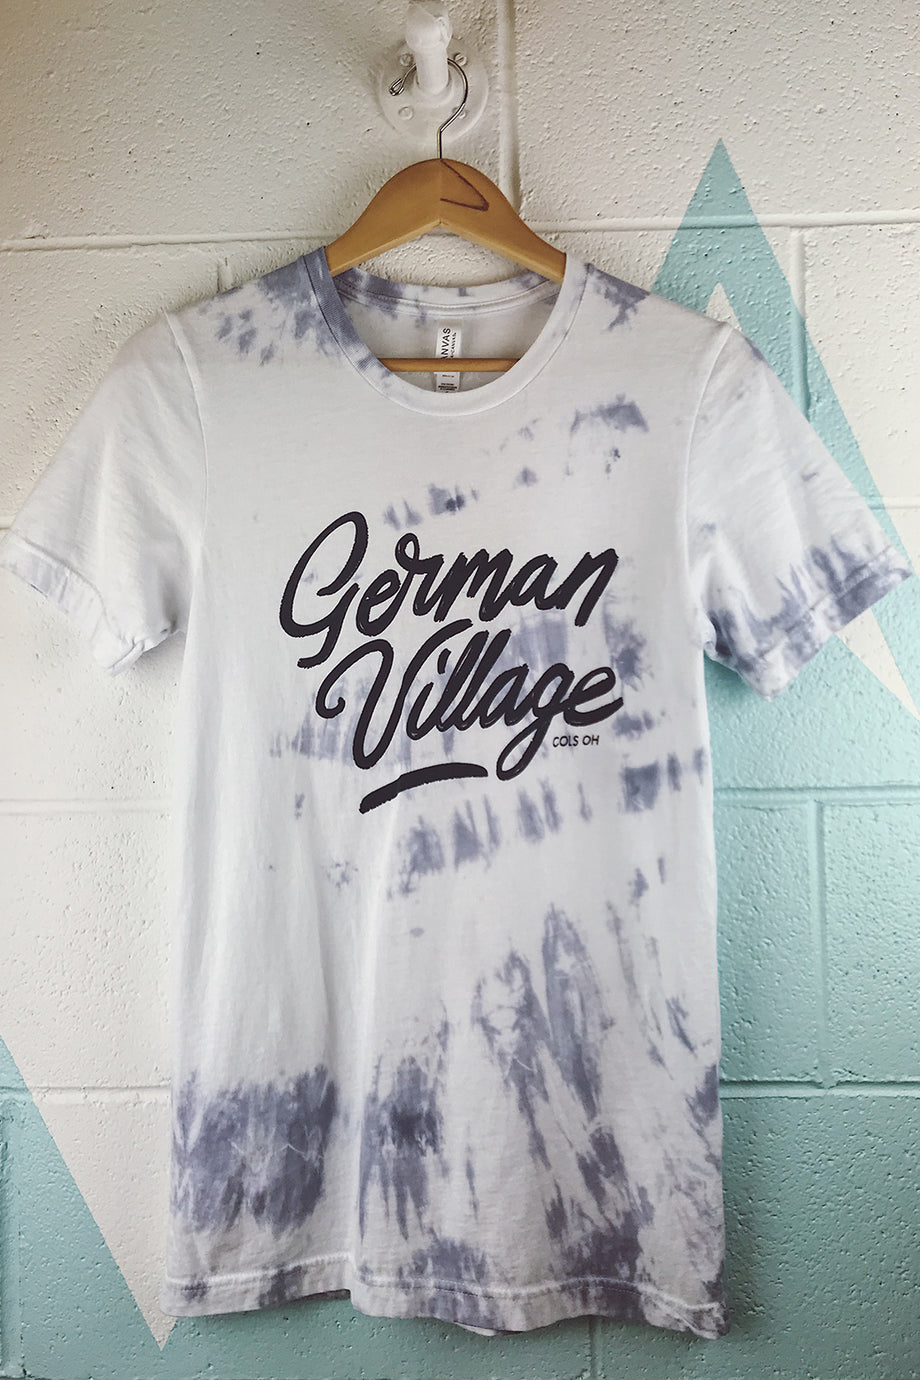 German Village Neighborhood Mens T-shirt